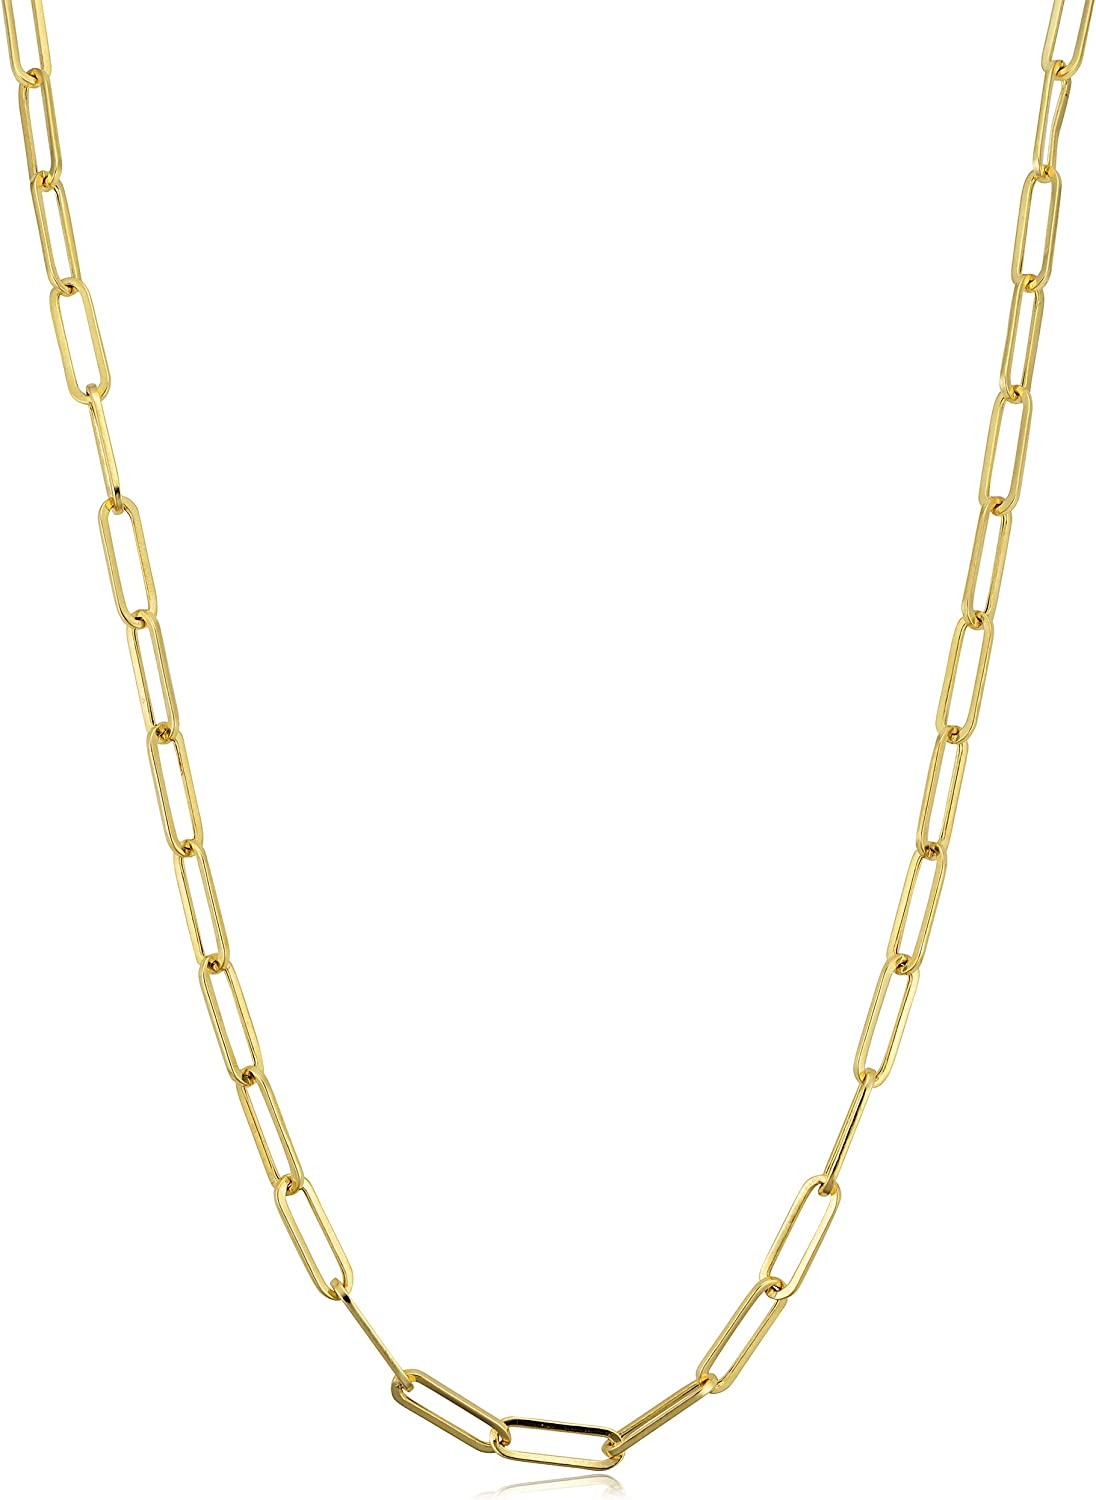 KoolJewelry 14k Yellow Gold 3mm Polished Capsule Paperclip Chain Necklace (18, 20, 24, 30 or 36 inch)